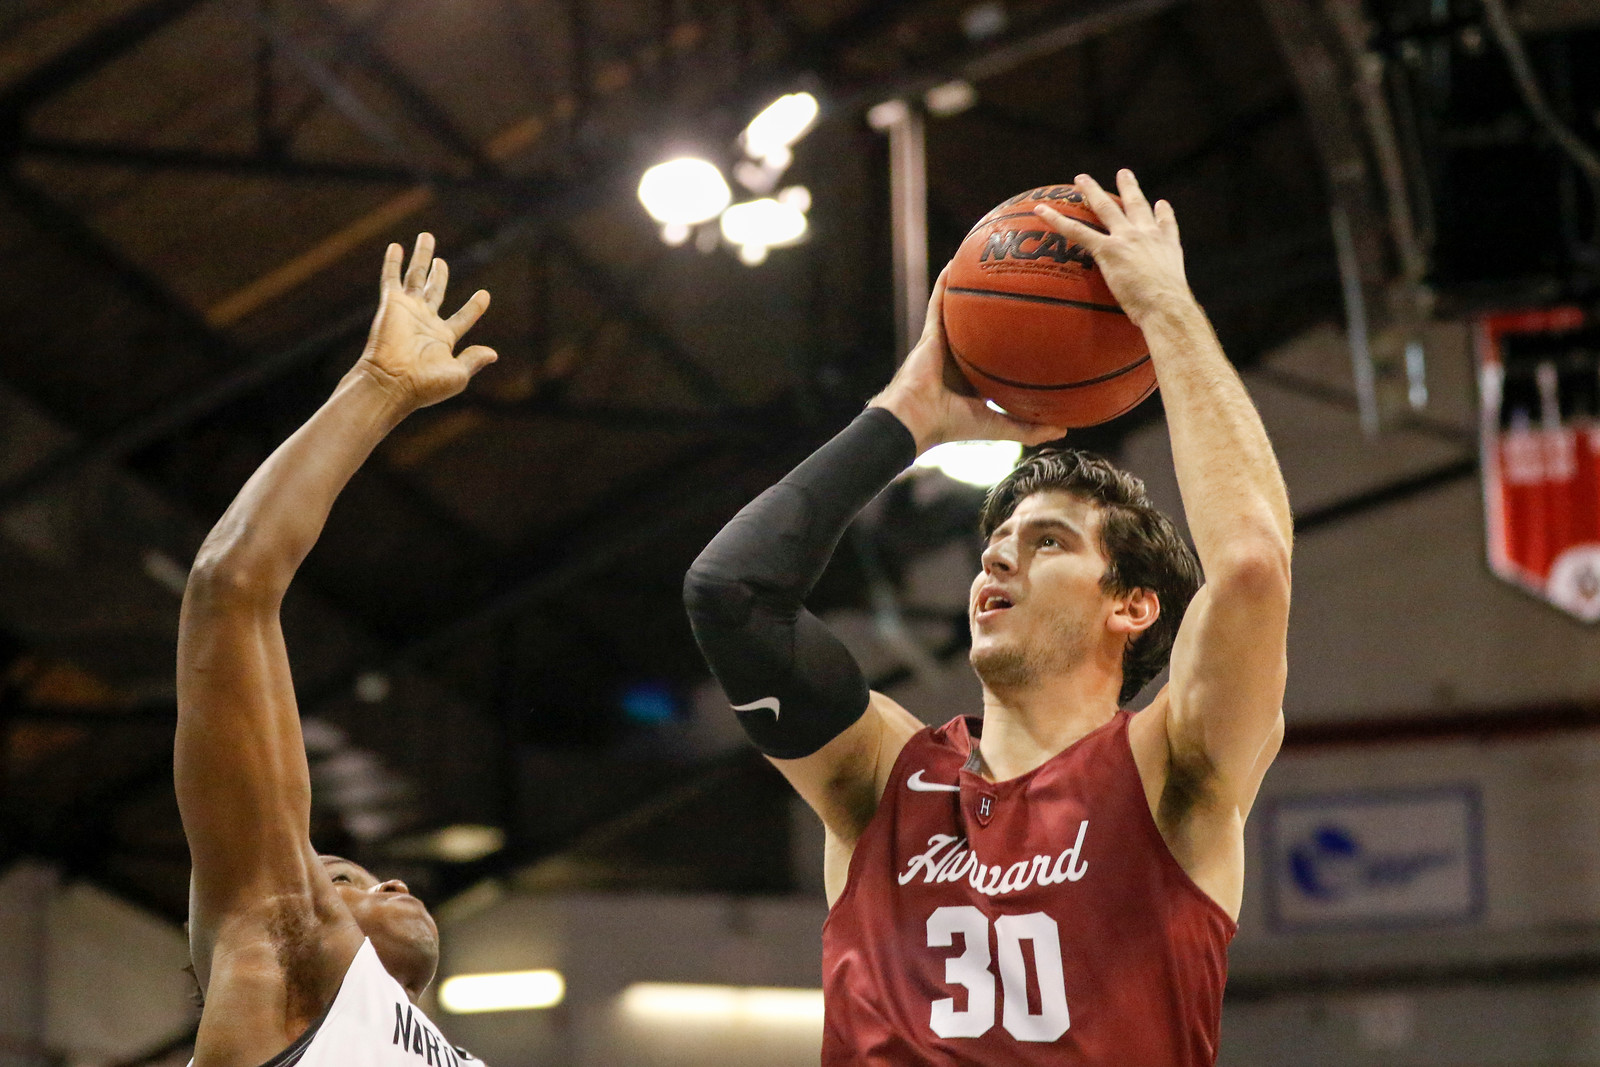 Harvard rallied for much of the second half but to no avail.